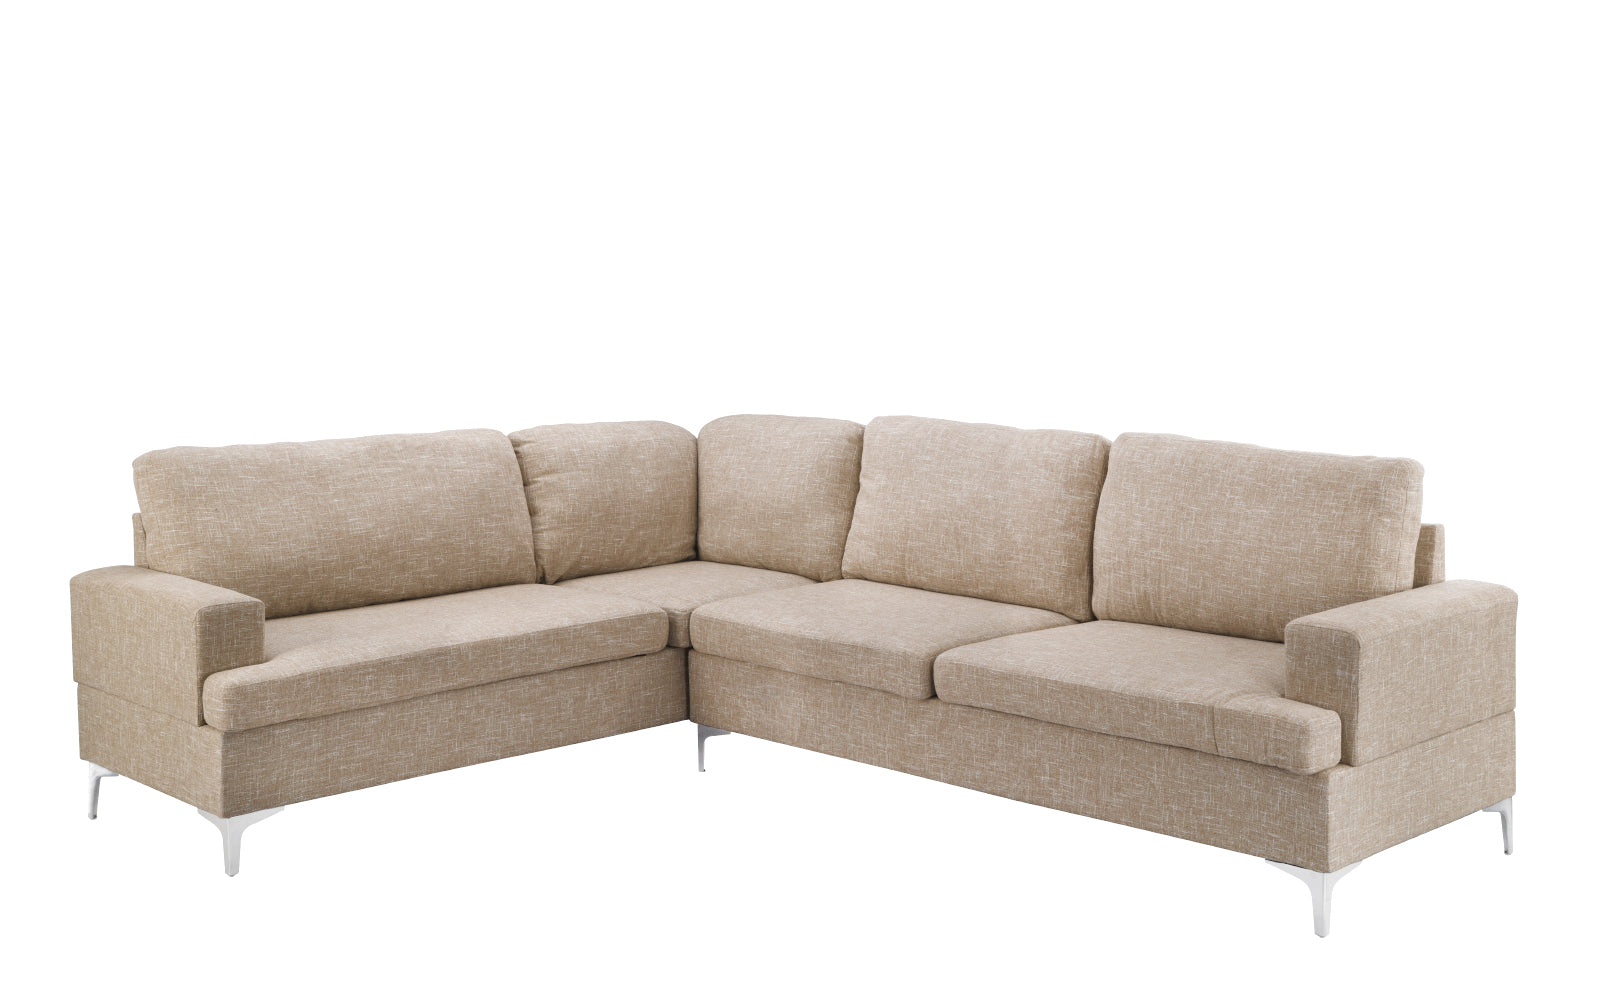 Alessandro Contemporary Oversized Sectional Sofa